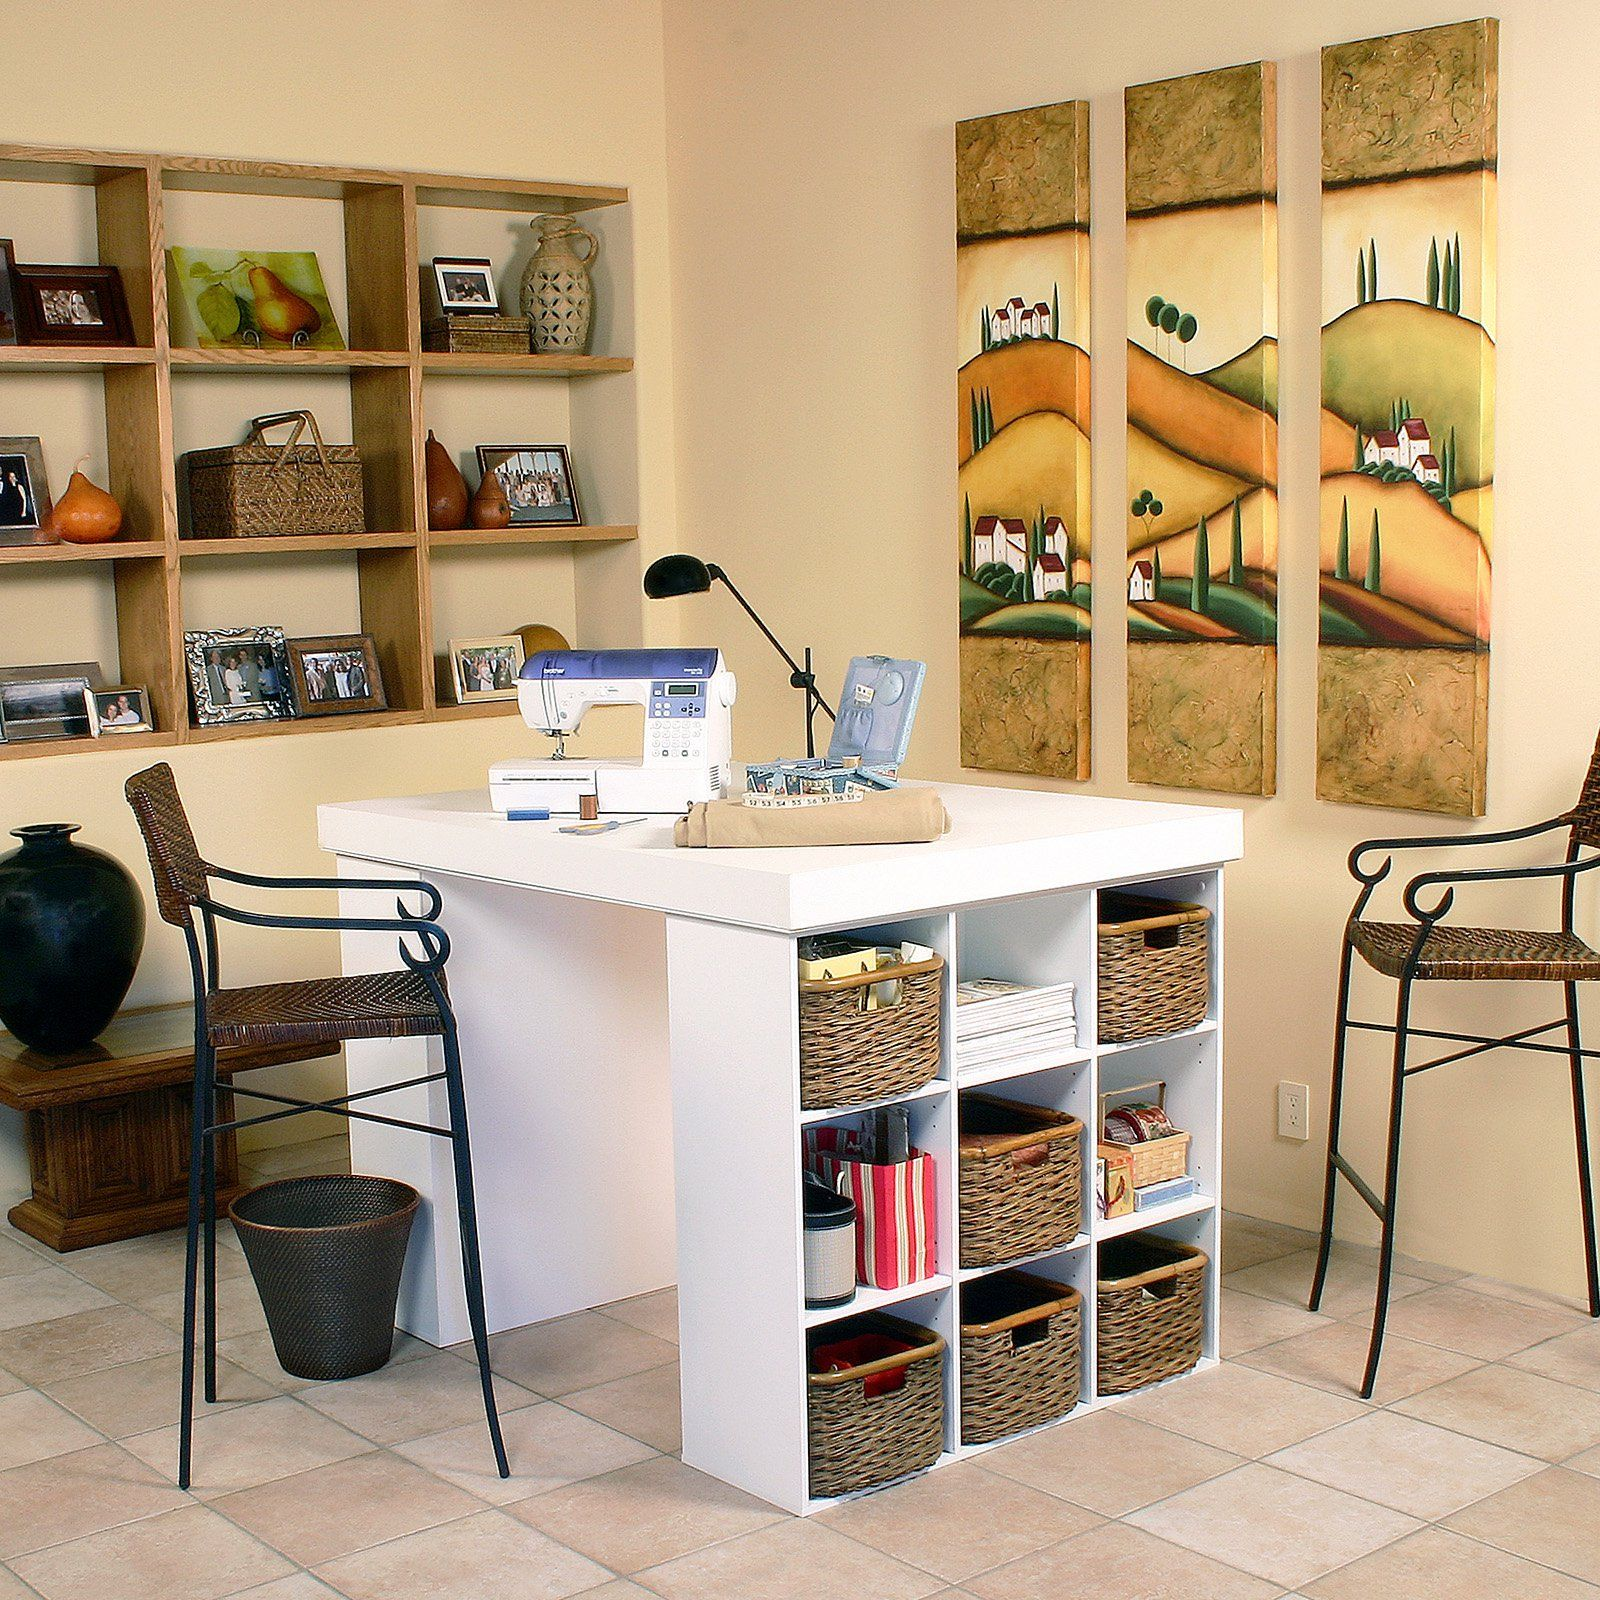 craft room ideas bedford collection. DIY Craft Room Table   Desk, Cube Shelving Unit And Easy Diy Crafts Ideas Bedford Collection C